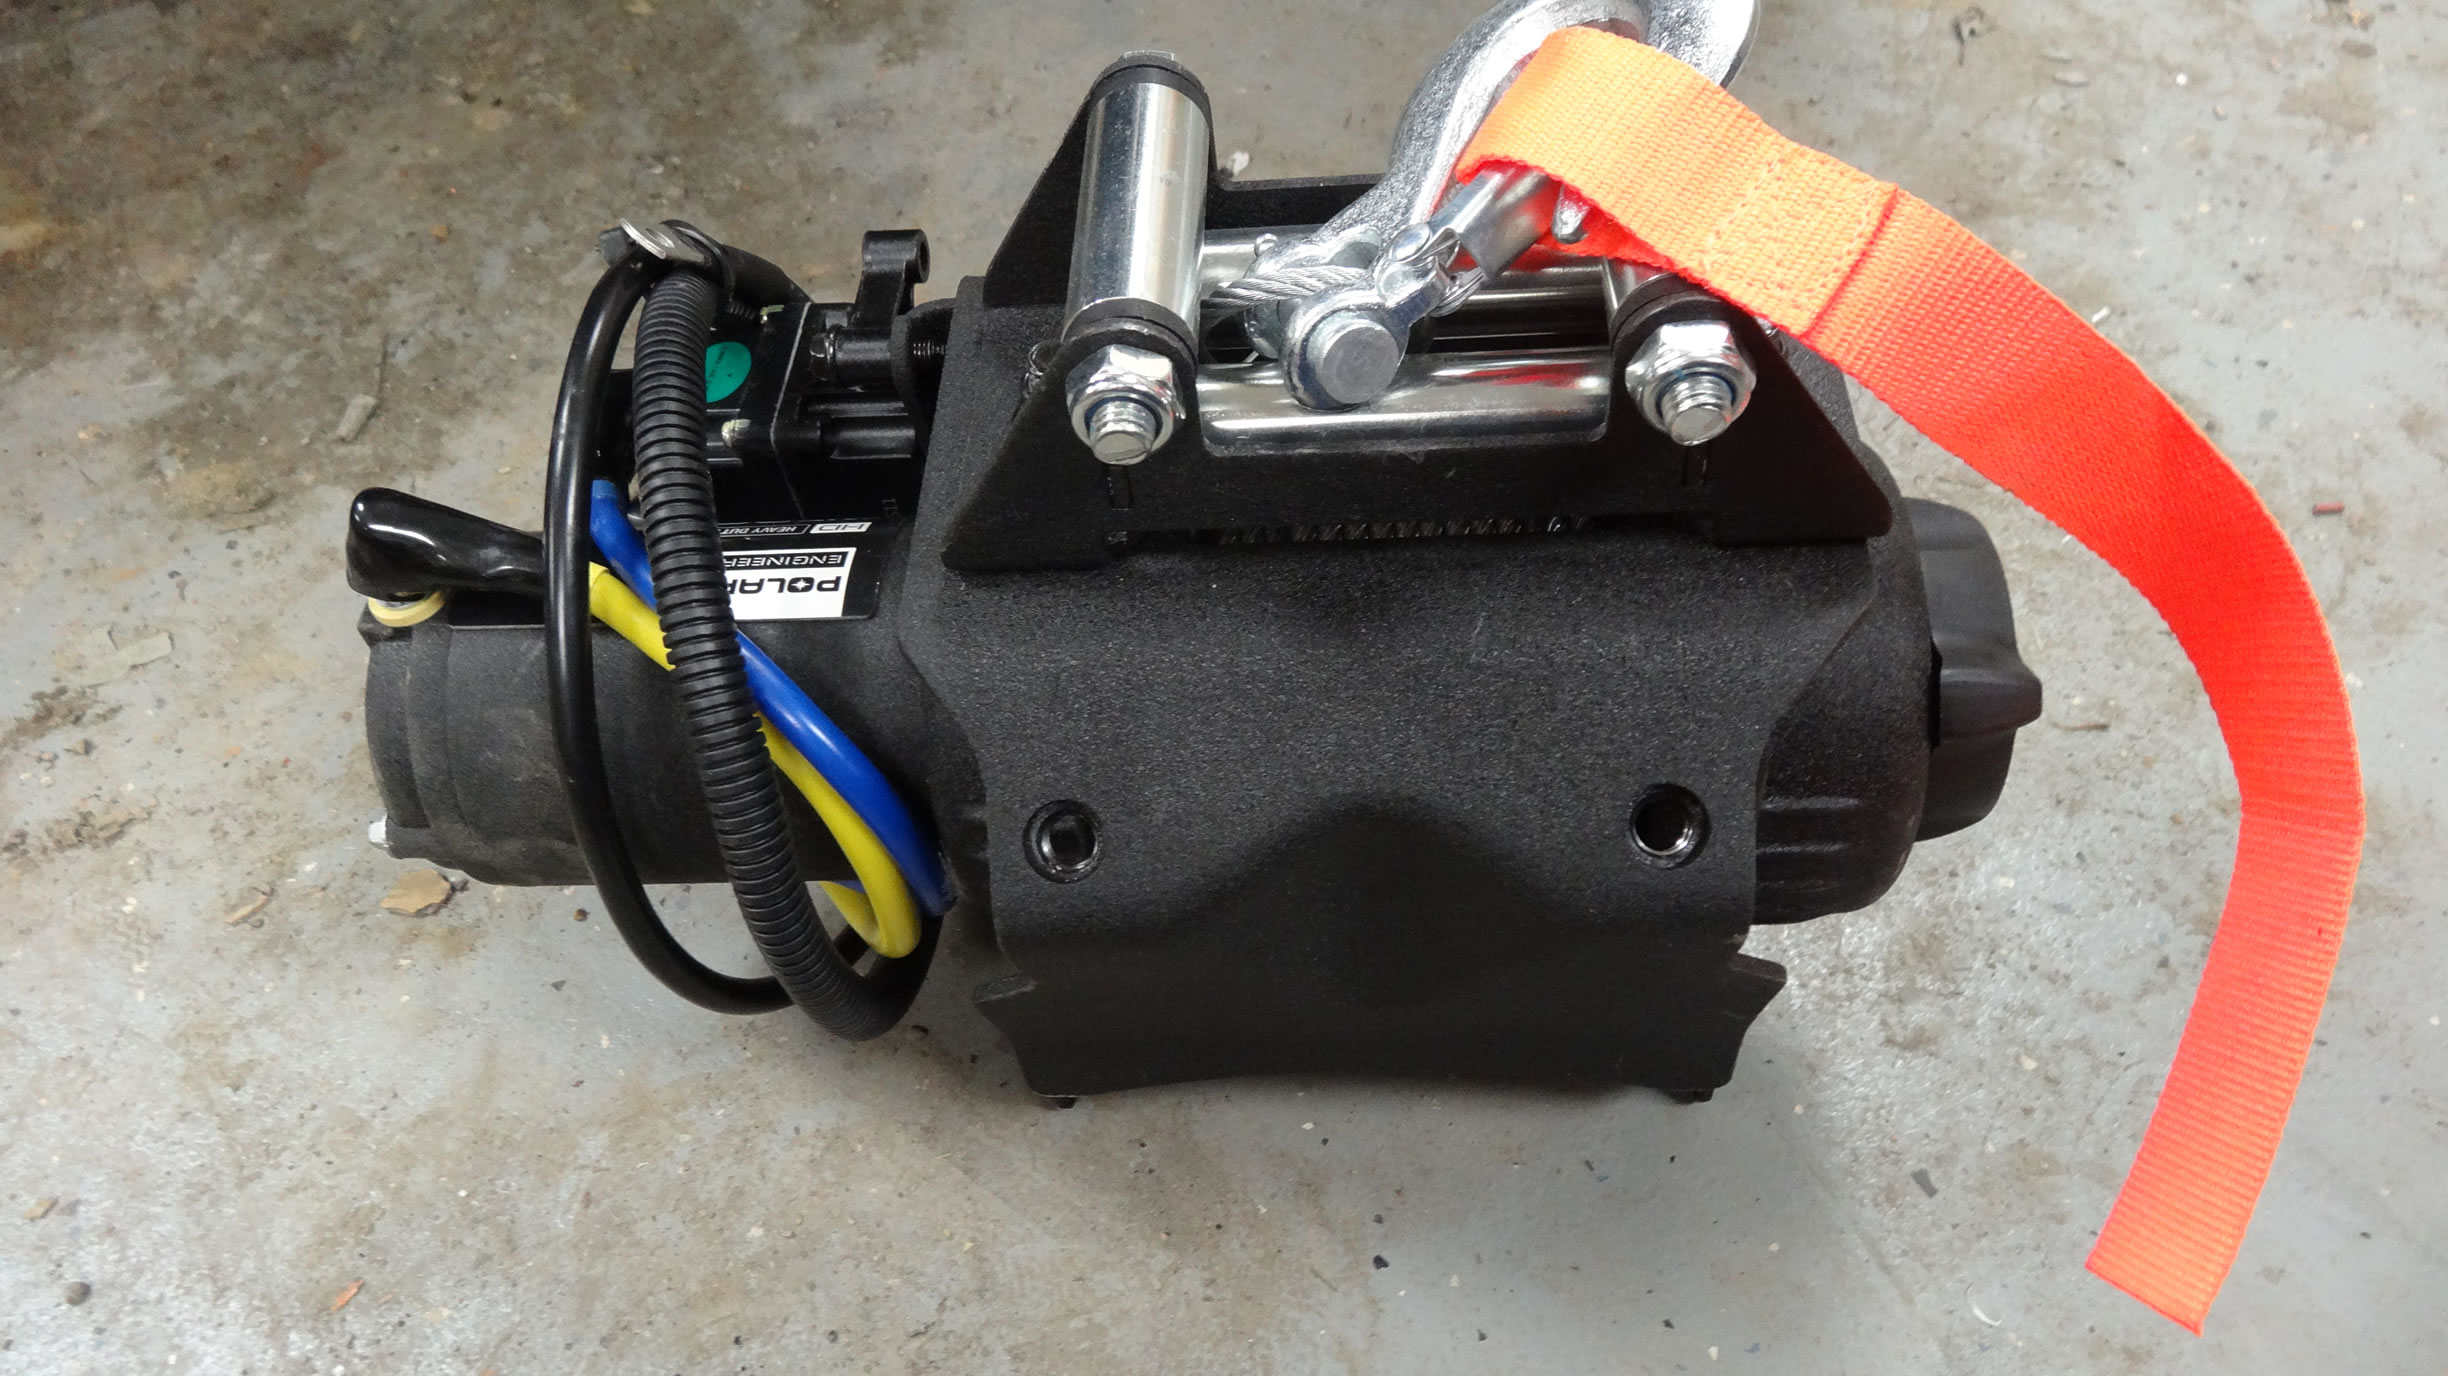 20755d1411089937 2014 polaris sportsman 570 efi winch issues dsc00907 2014 polaris sportsman 570 efi winch issues polaris atv forum Polaris Winch Wiring Diagram at readyjetset.co